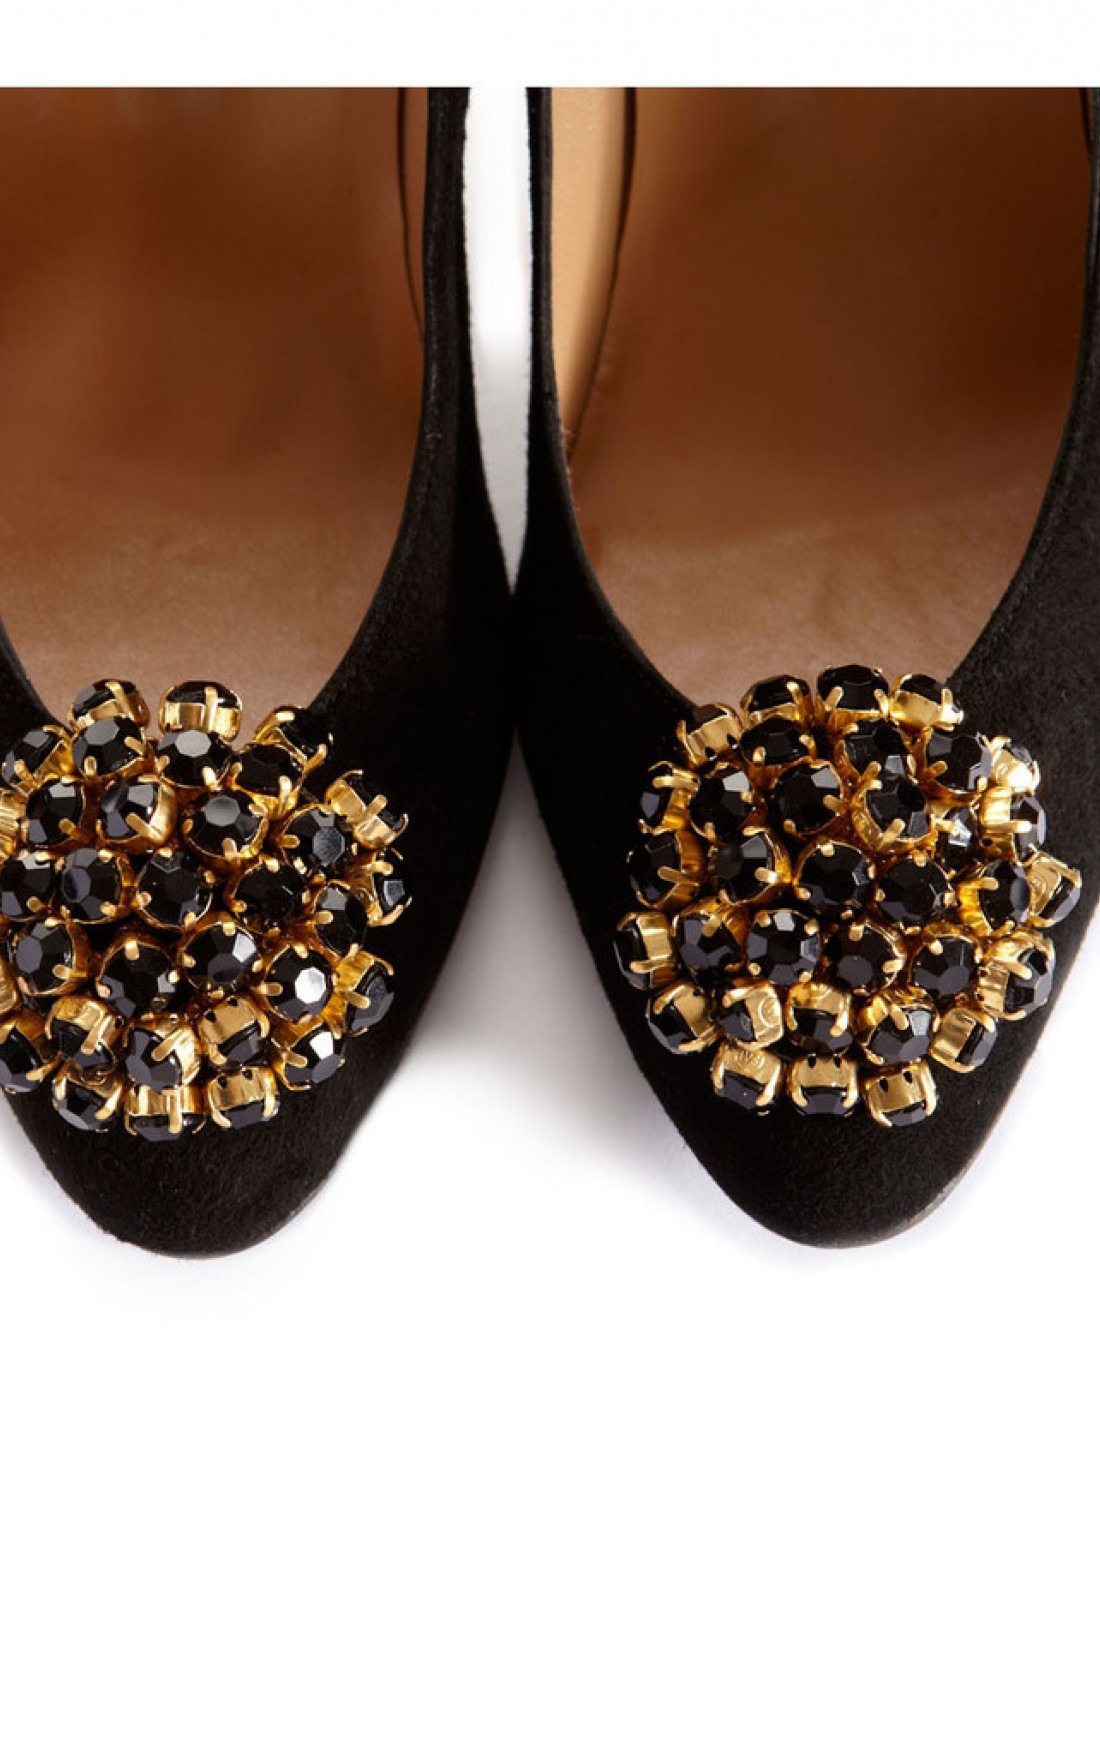 Cleo B - Black & Gold Crystal Shoe Clips (CBCRY)